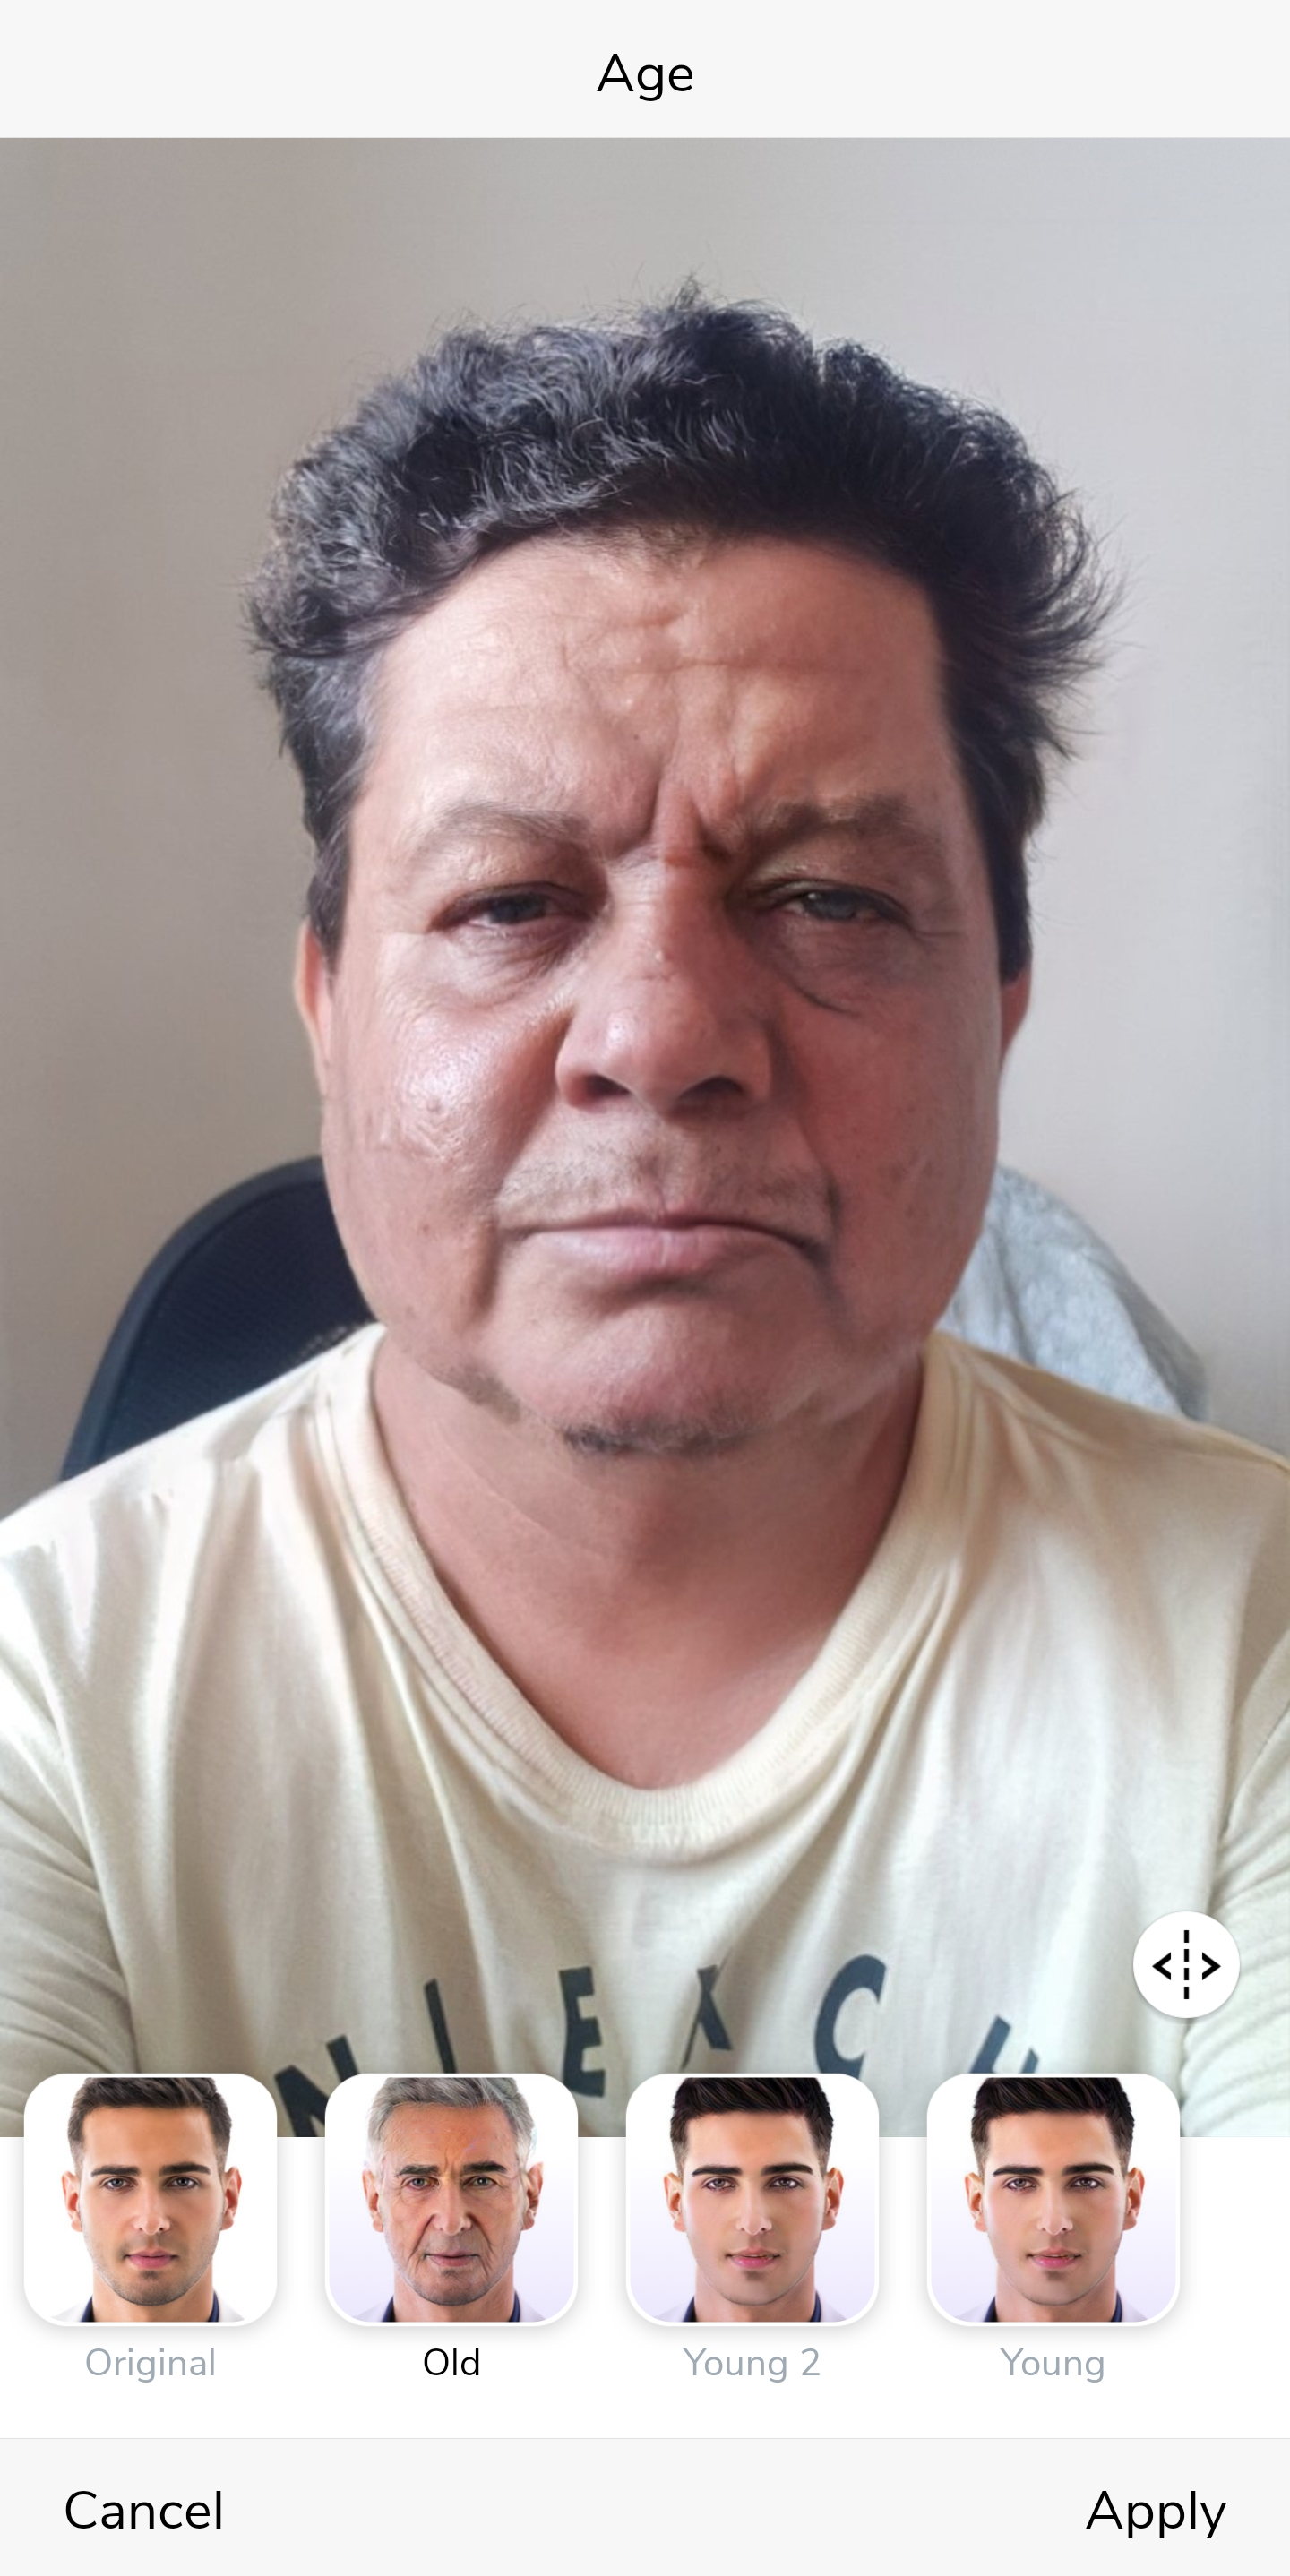 How to Get Old Age Filter